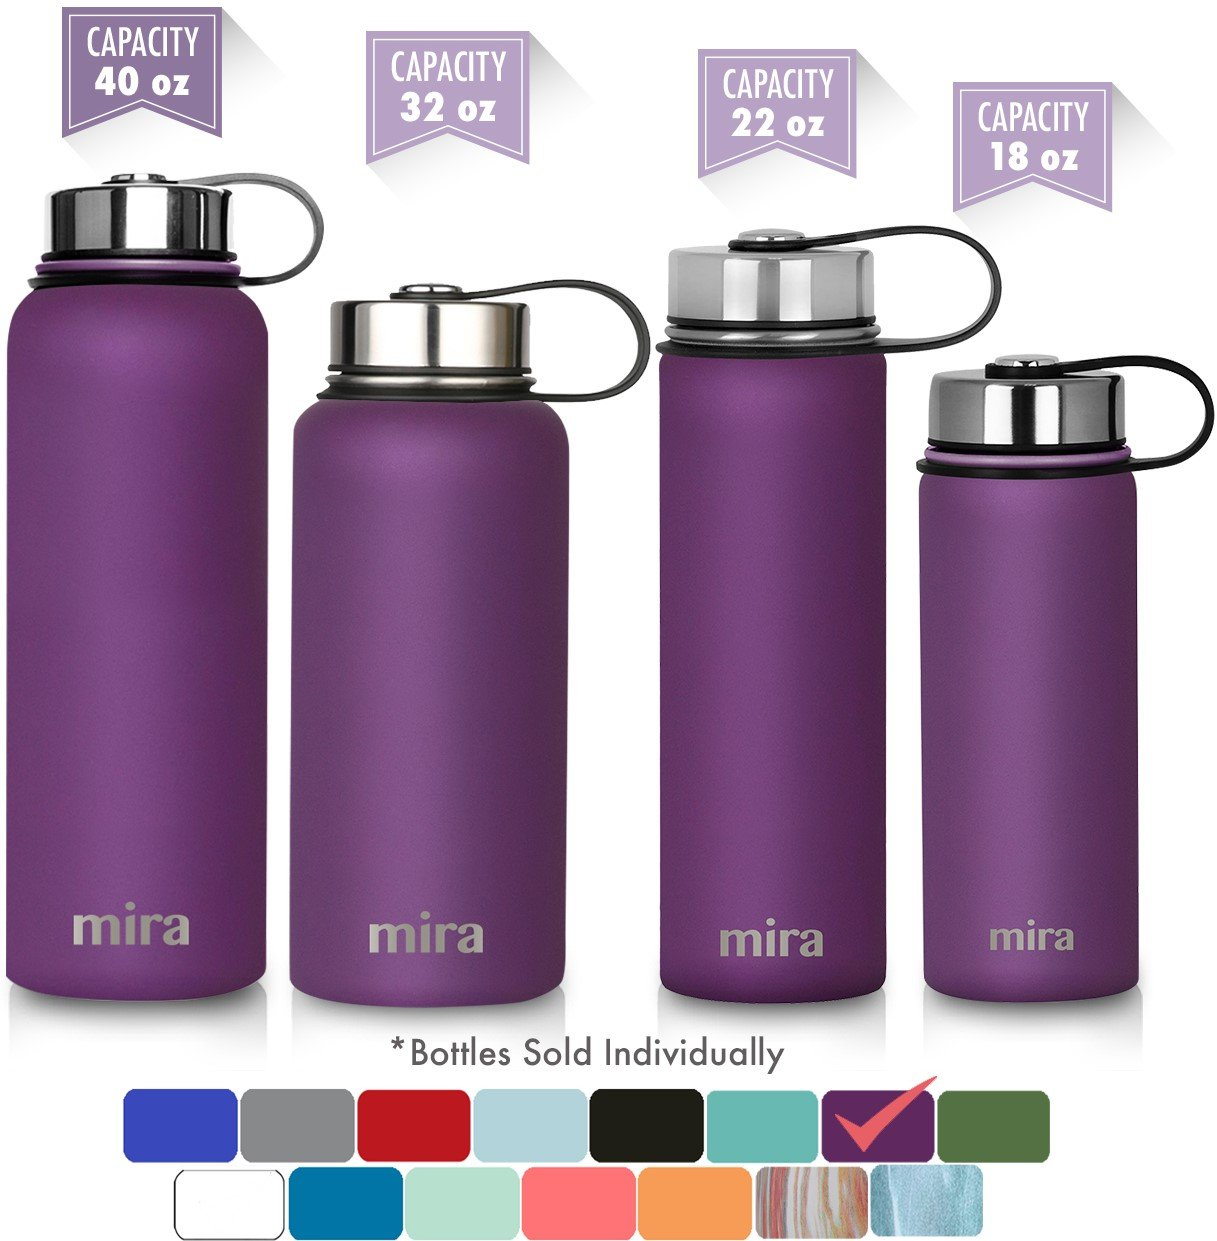 MIRA 22 Oz Stainless Steel Vacuum Insulated Wide Mouth Water Bottle | Thermos Keeps Cold for 24 hours, Hot for 12 hours | Double Wall Powder Coated Travel Flask | Iris by MIRA